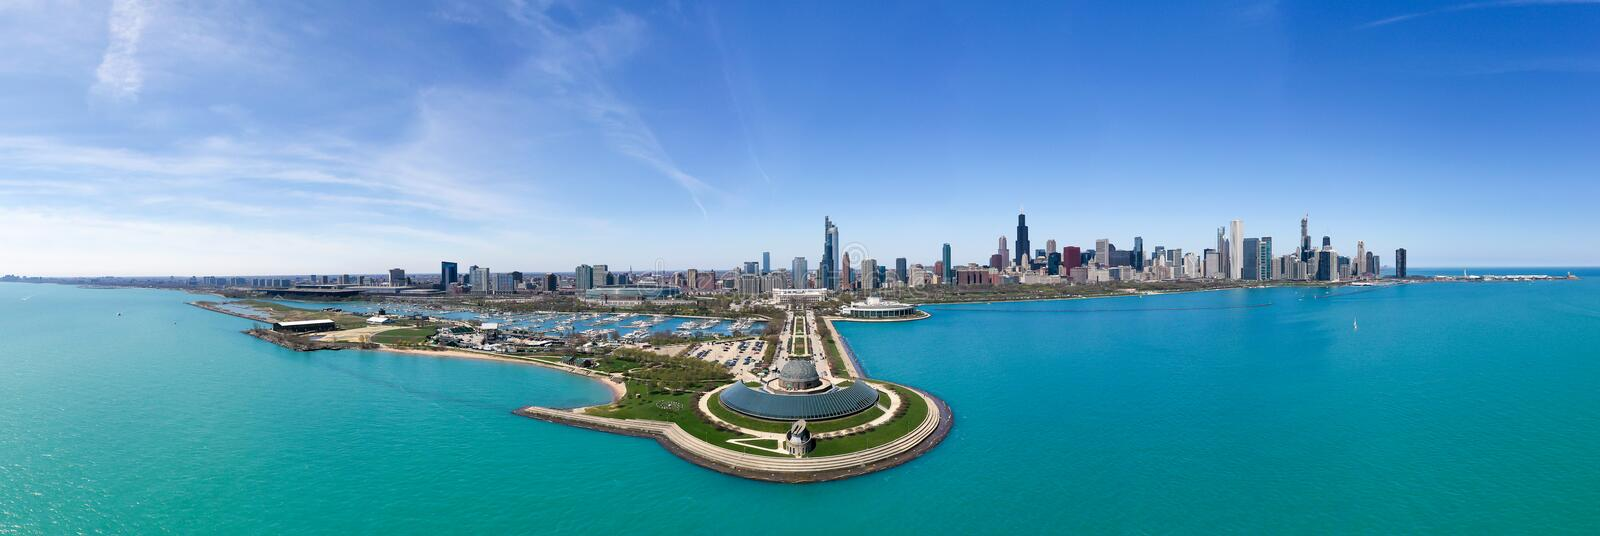 Chicago Skyline from Air View stock images